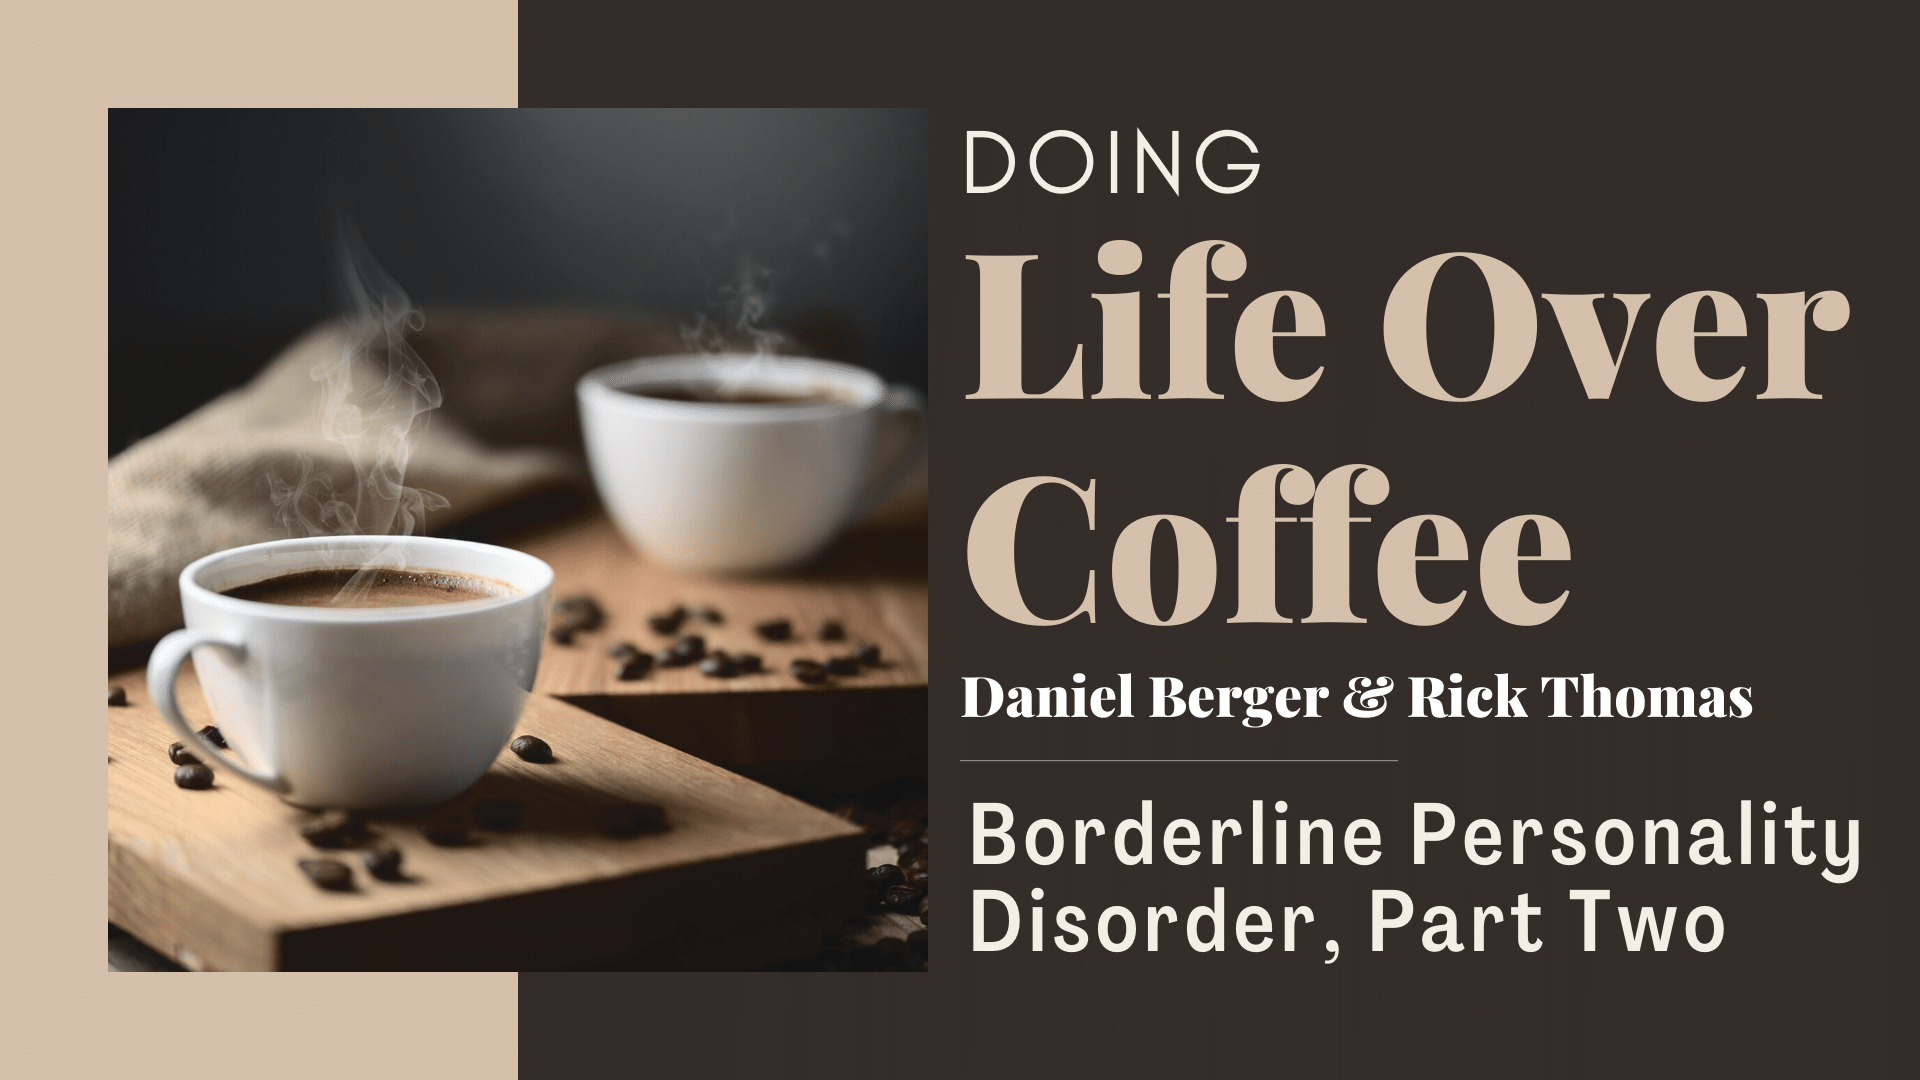 Borderline Personality Disorder, Part Two